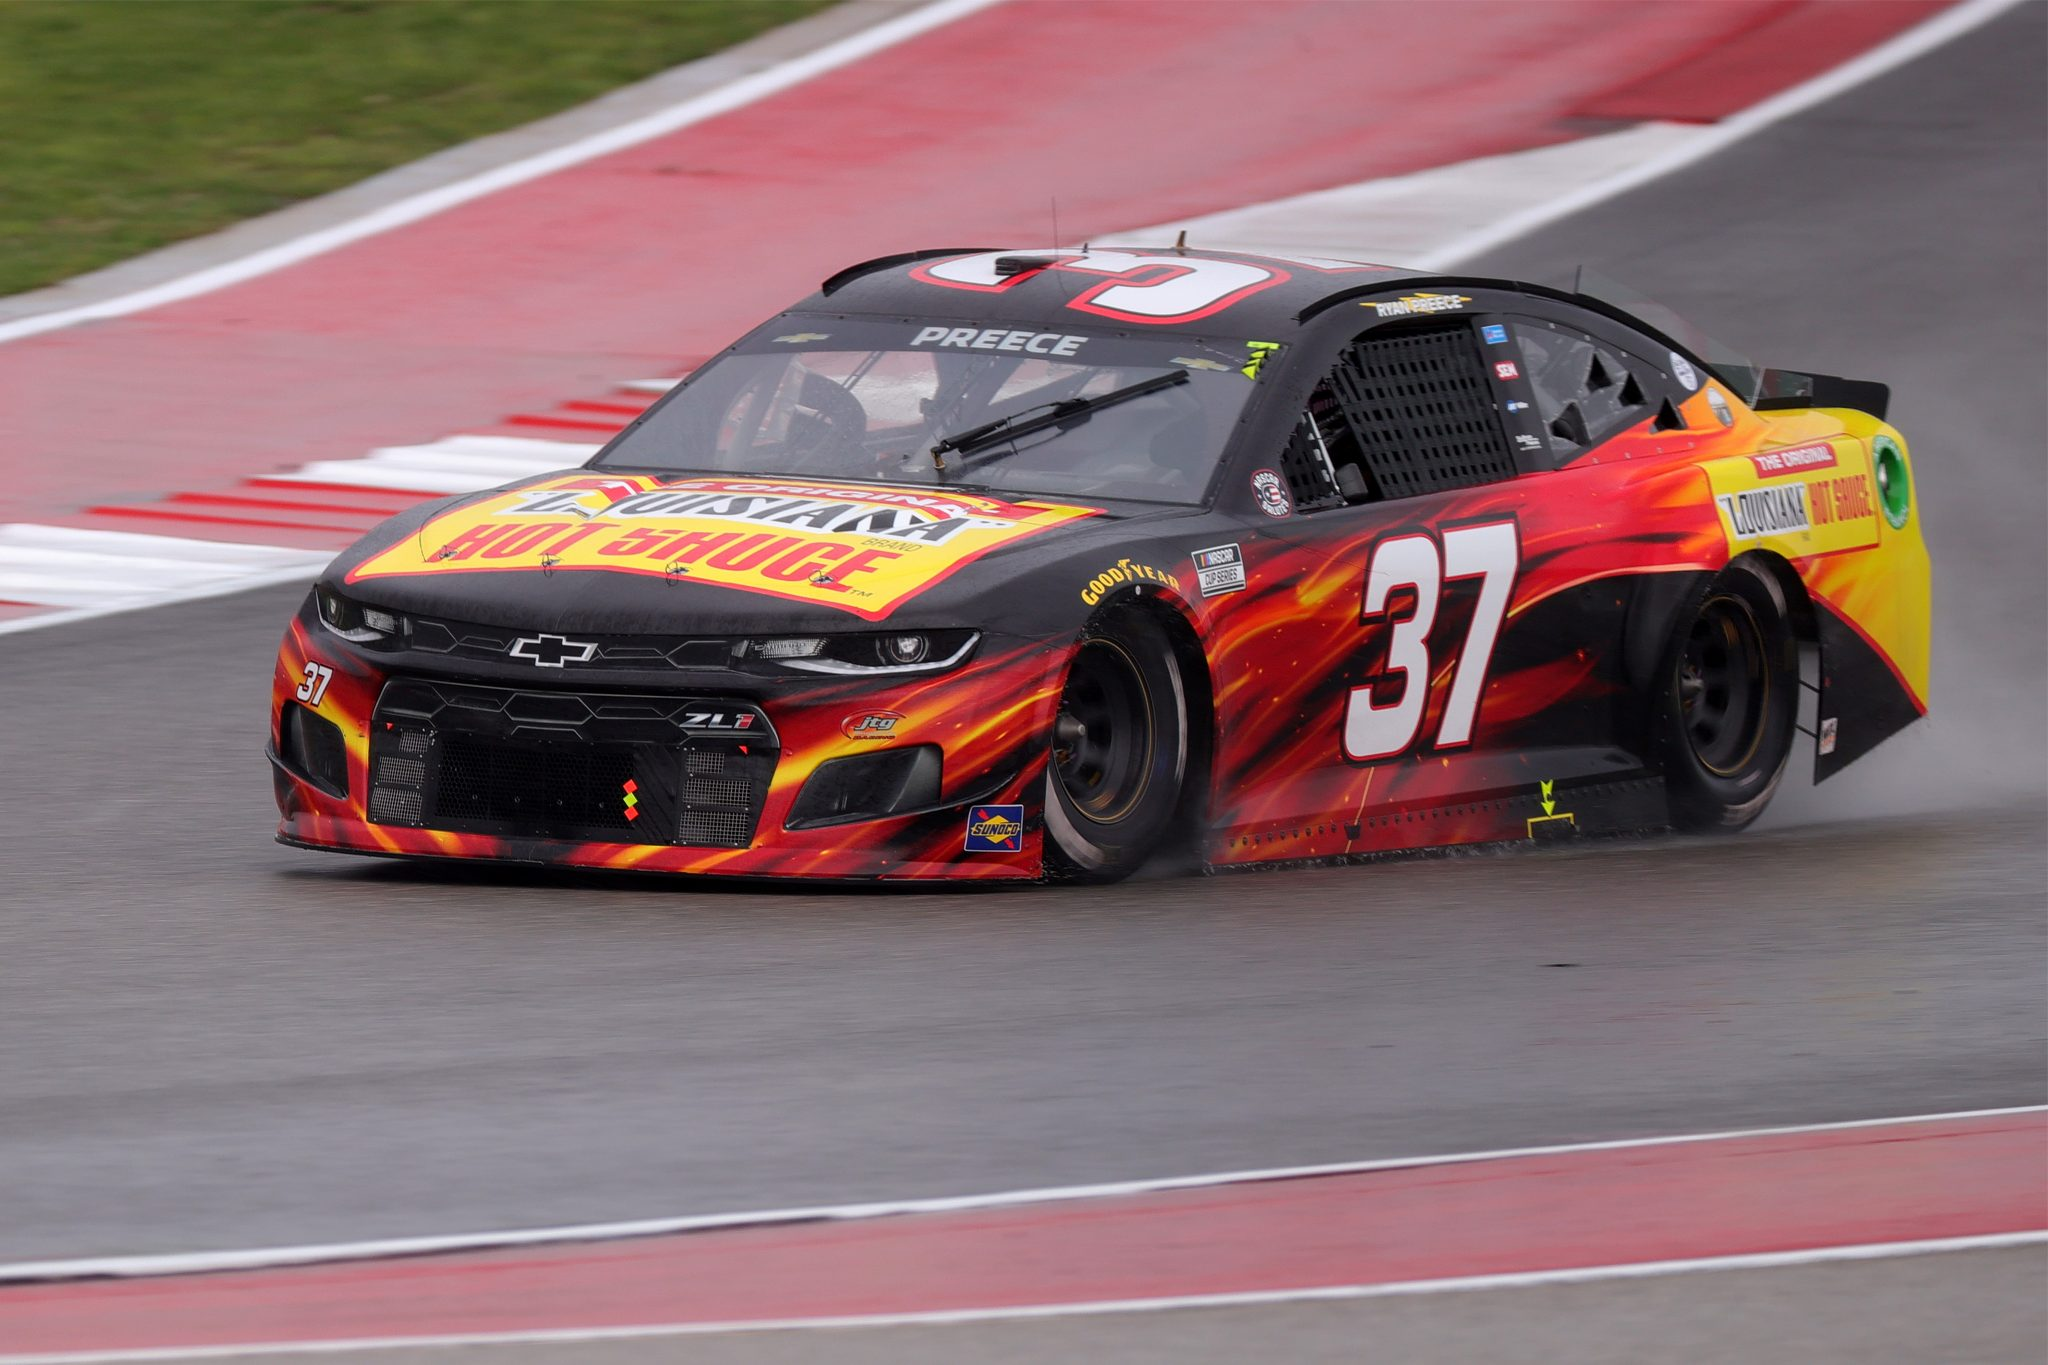 AUSTIN, TEXAS - MAY 23: Ryan Preece, driver of the #37 Louisiana Hot Sauce Chevrolet, drives during the NASCAR Cup Series EchoPark Texas Grand Prix at Circuit of The Americas on May 23, 2021 in Austin, Texas. (Photo by Carmen Mandato/Getty Images) | Getty Images